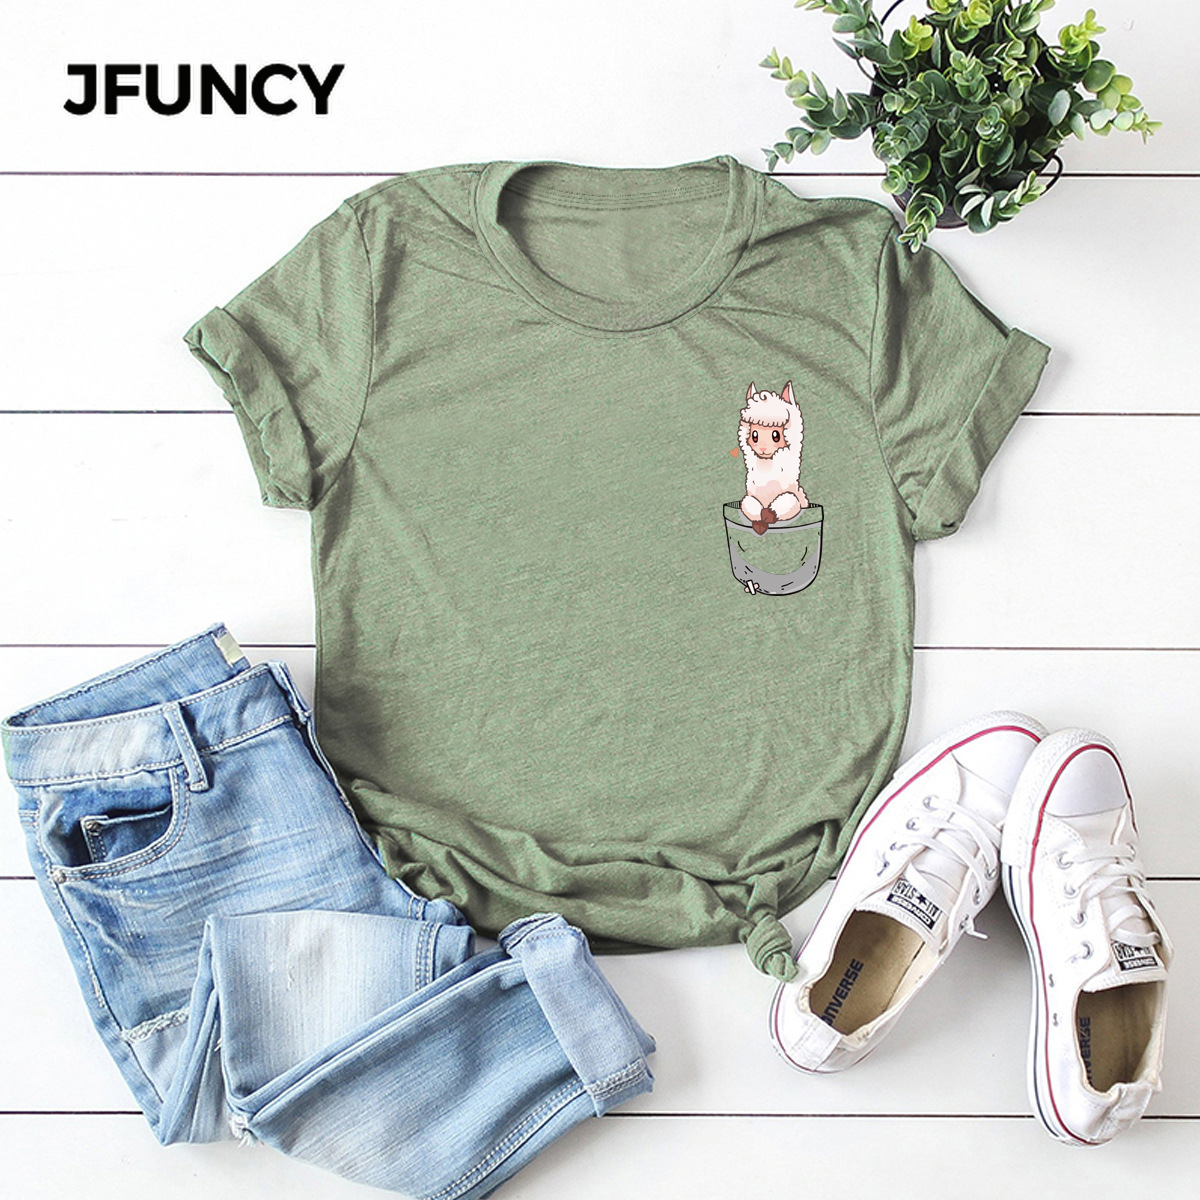 JFUNCY Cartoon Pocket Print Plus Size Women Loose Tees Tops 100% Cotton Summer Shirts Woman T-Shirt Fashion Female Casual Tshirt